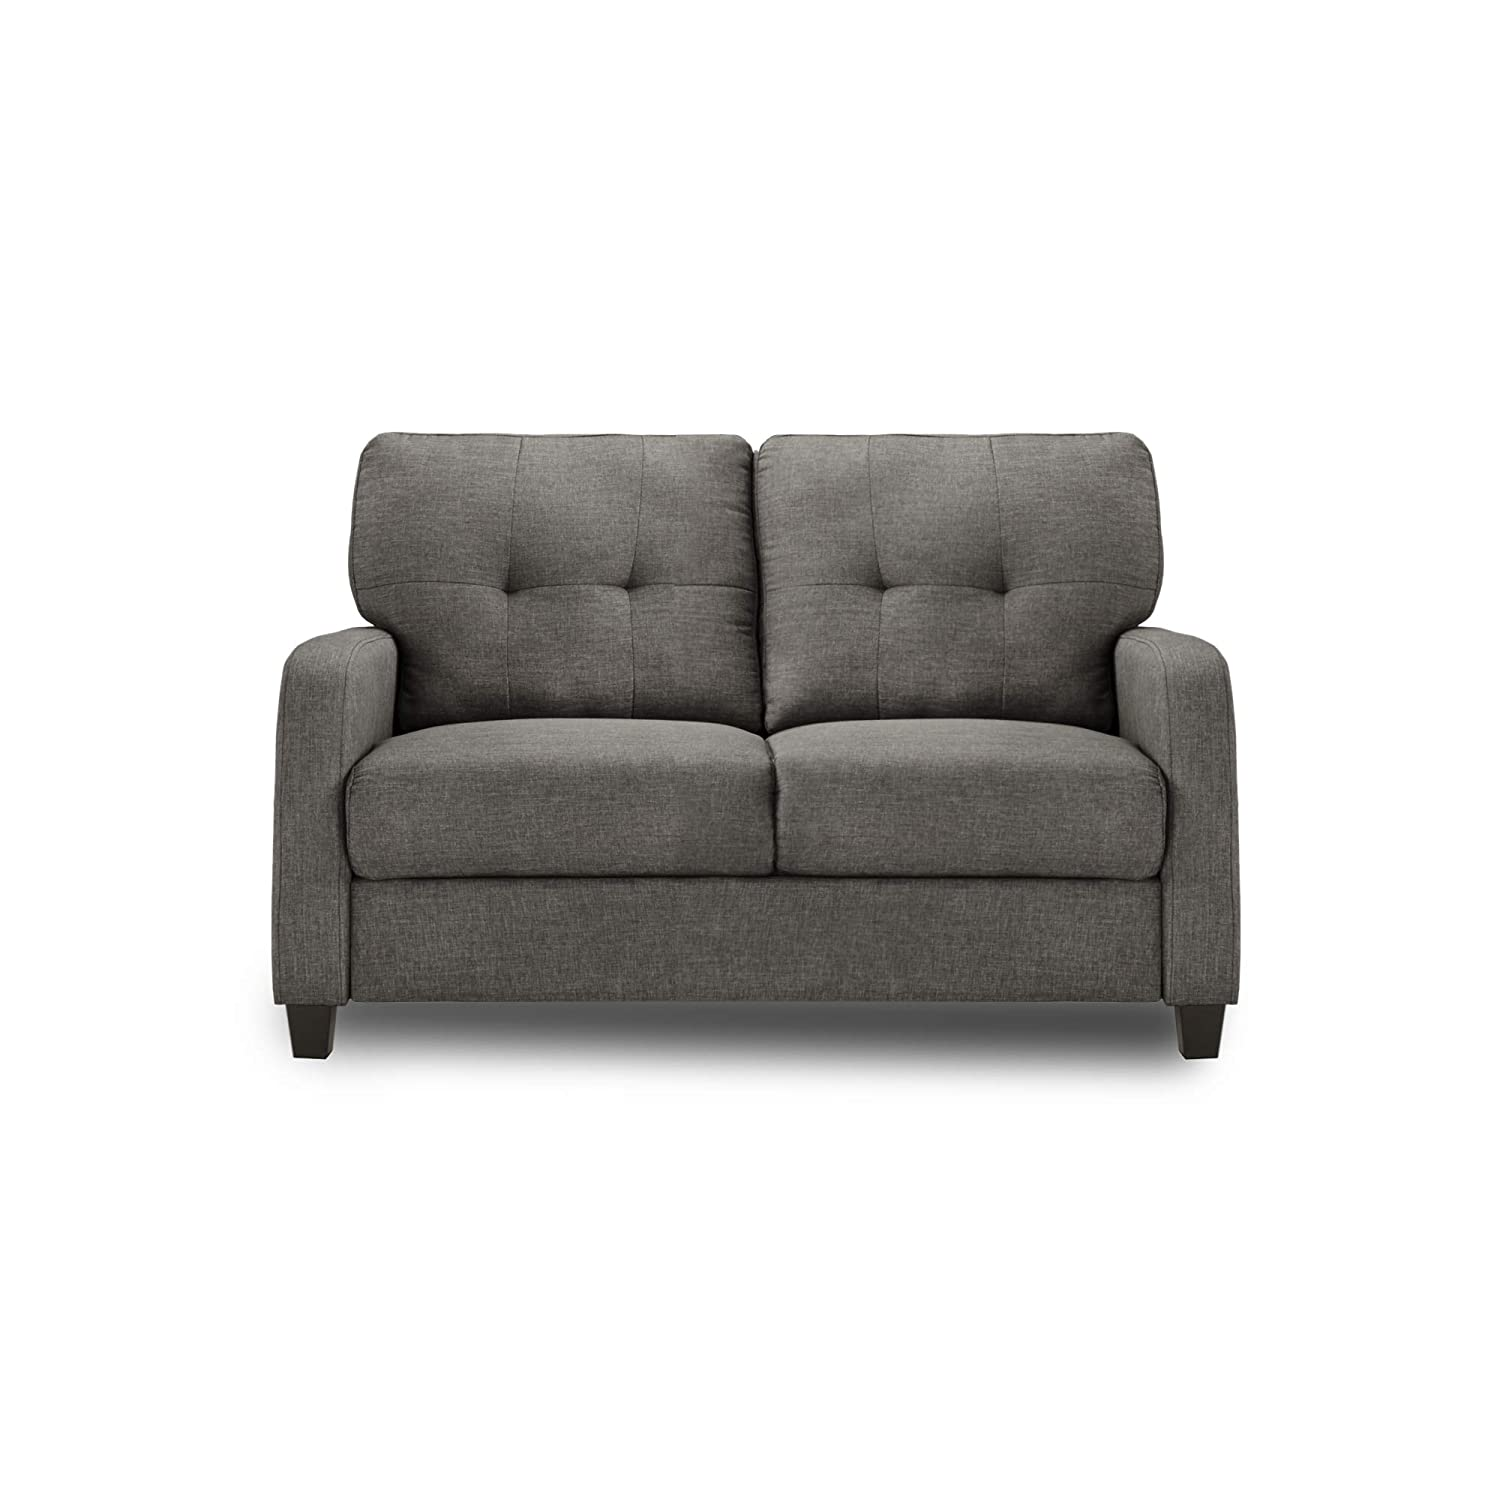 Adorn India Astor Two Seater Sofa (Grey)